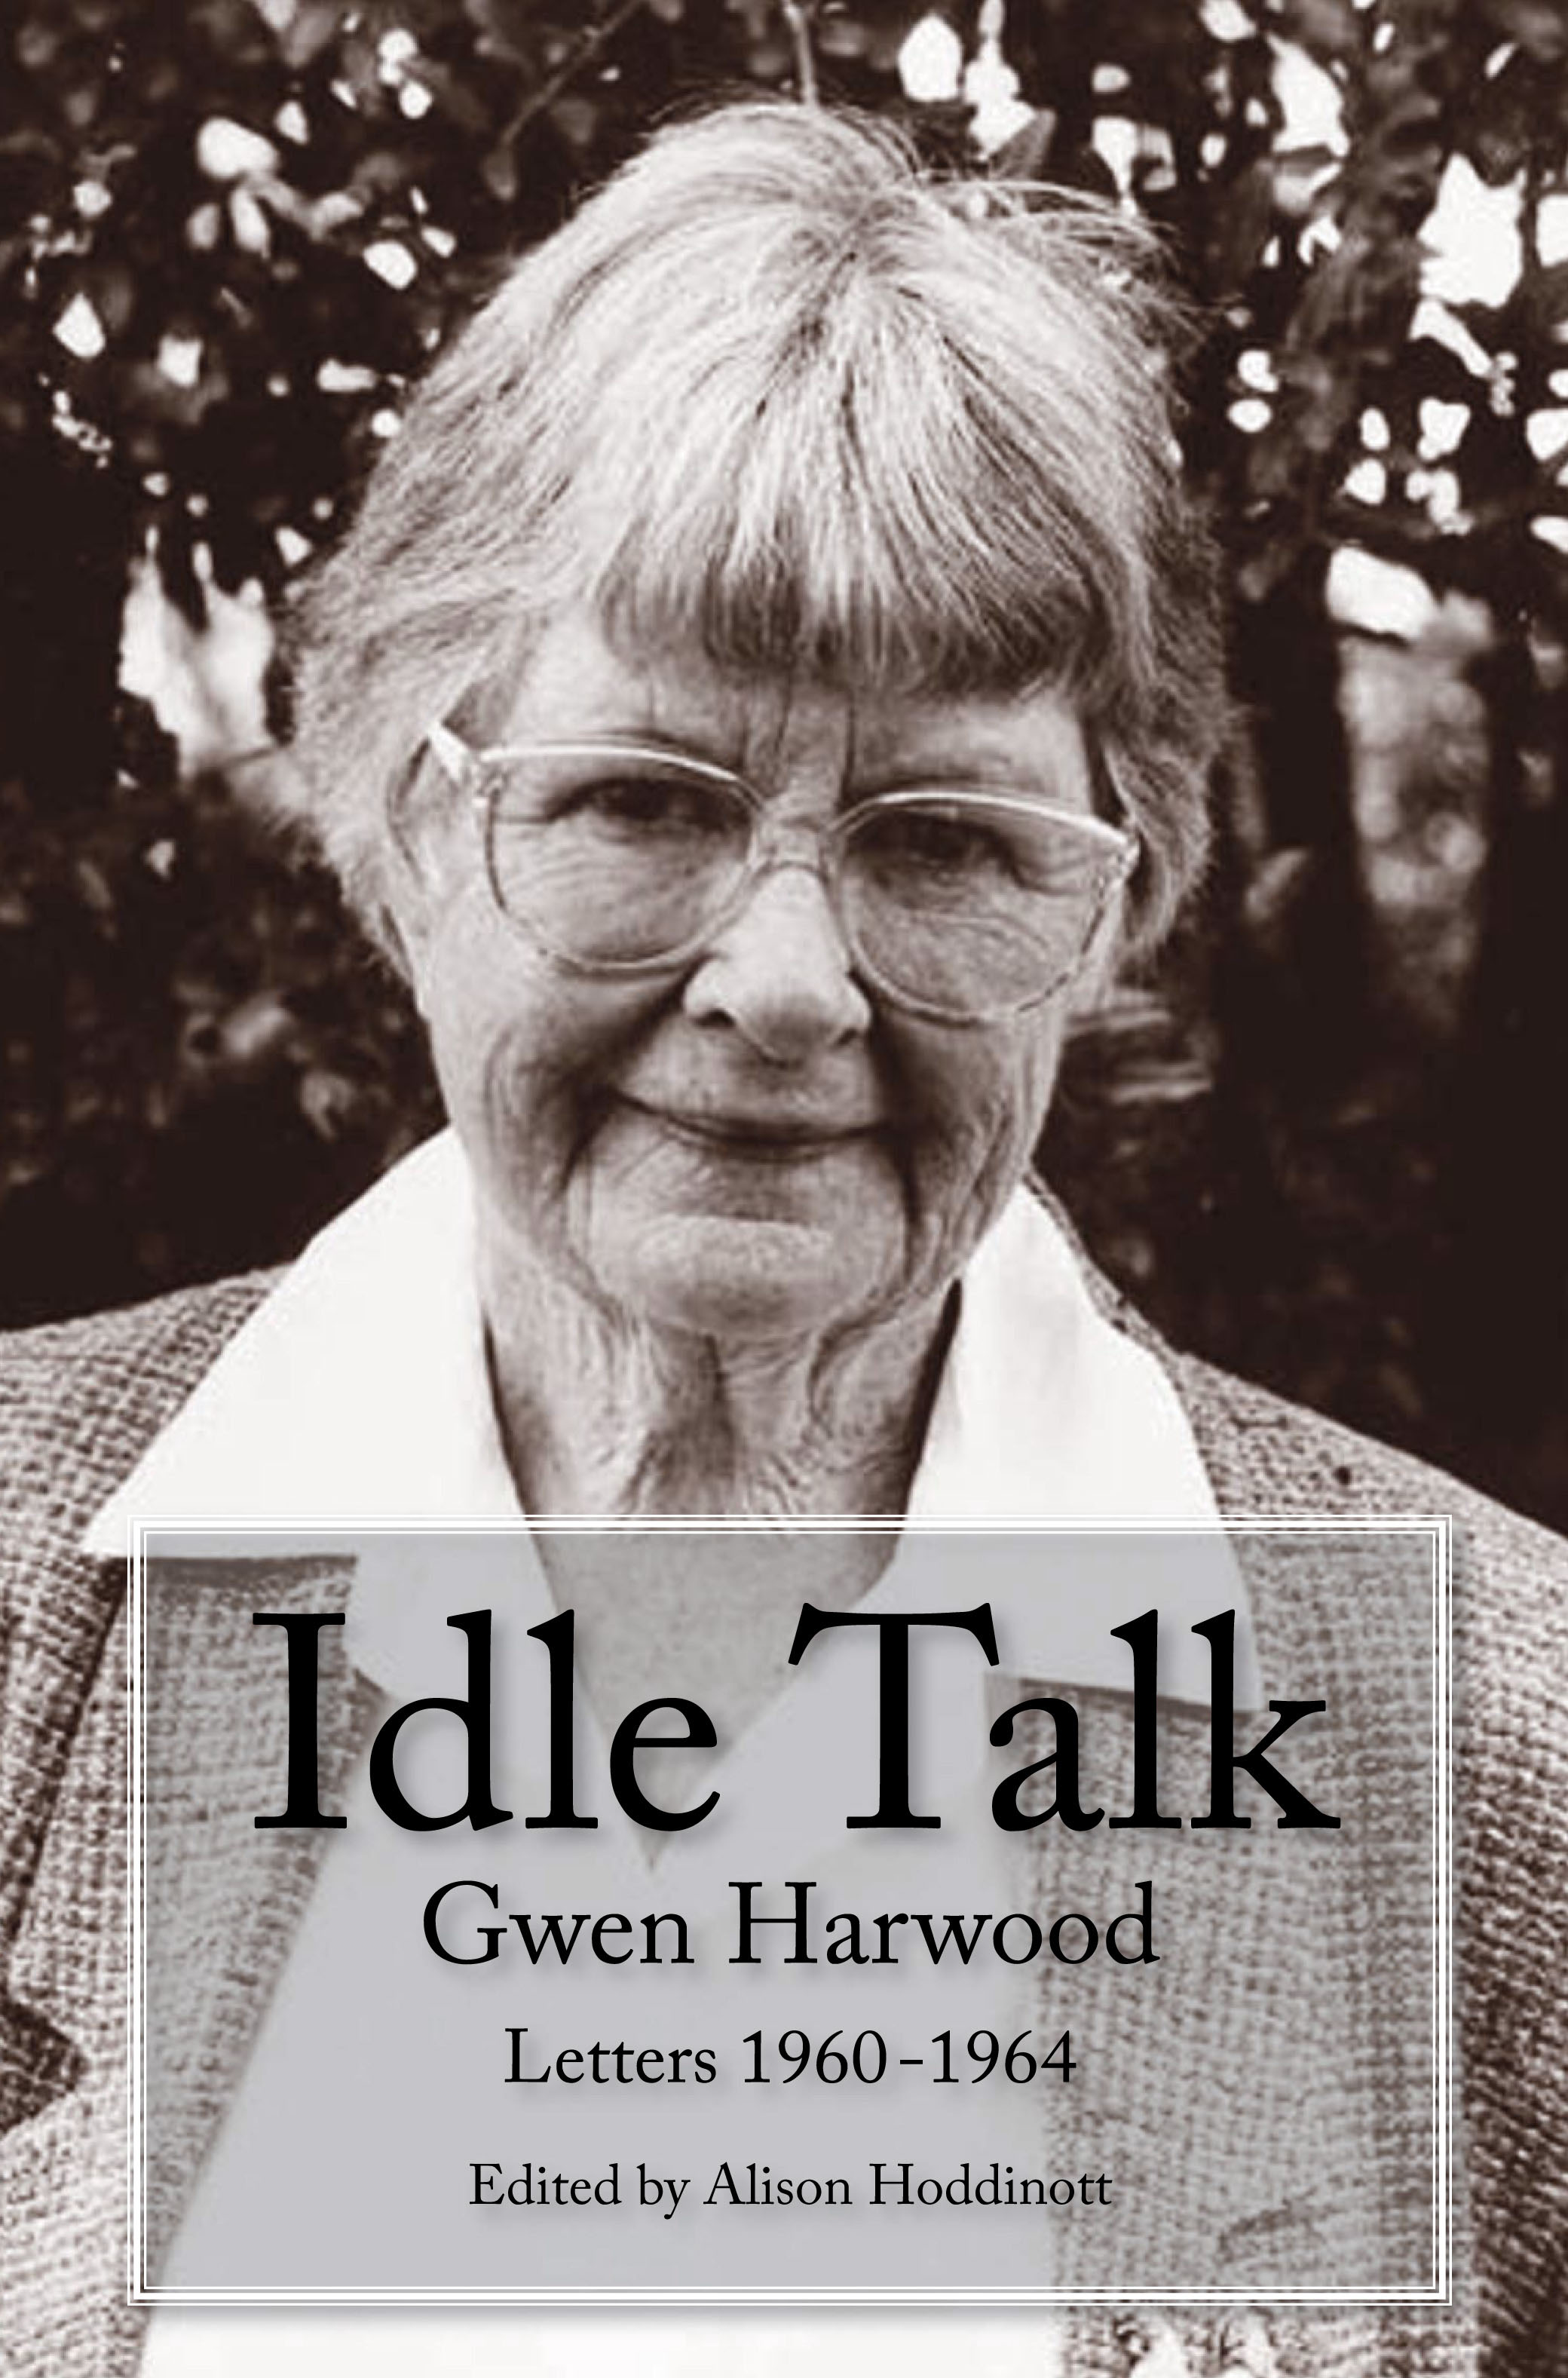 emotions in poetry gwen hardwood Essays - largest database of quality sample essays and research papers on gwen harwood poetry.